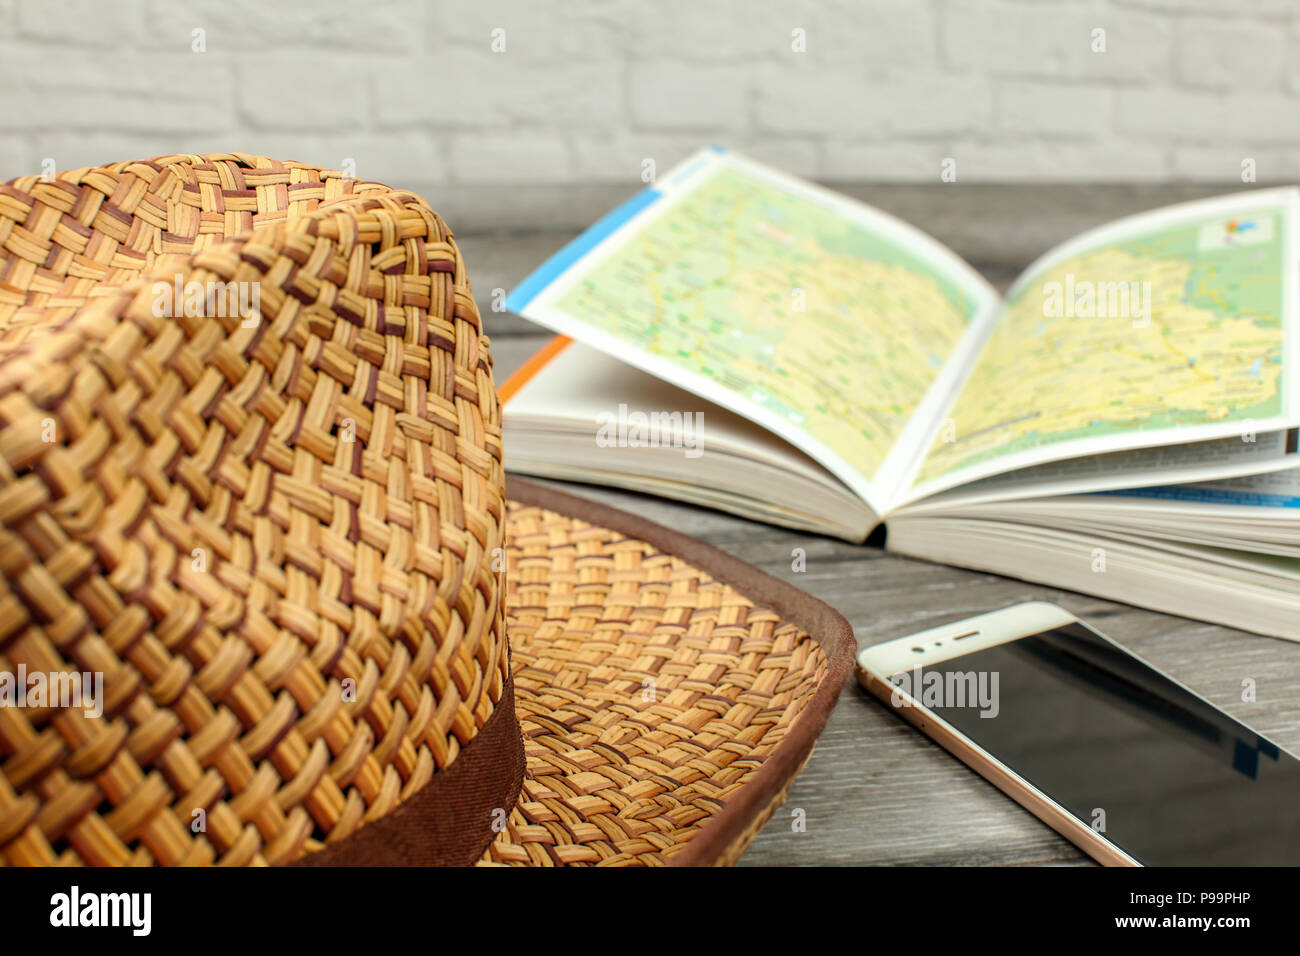 Straw hat, guide book with map, and mobile phone on gray wood desk. Travel planning concept. - Stock Image